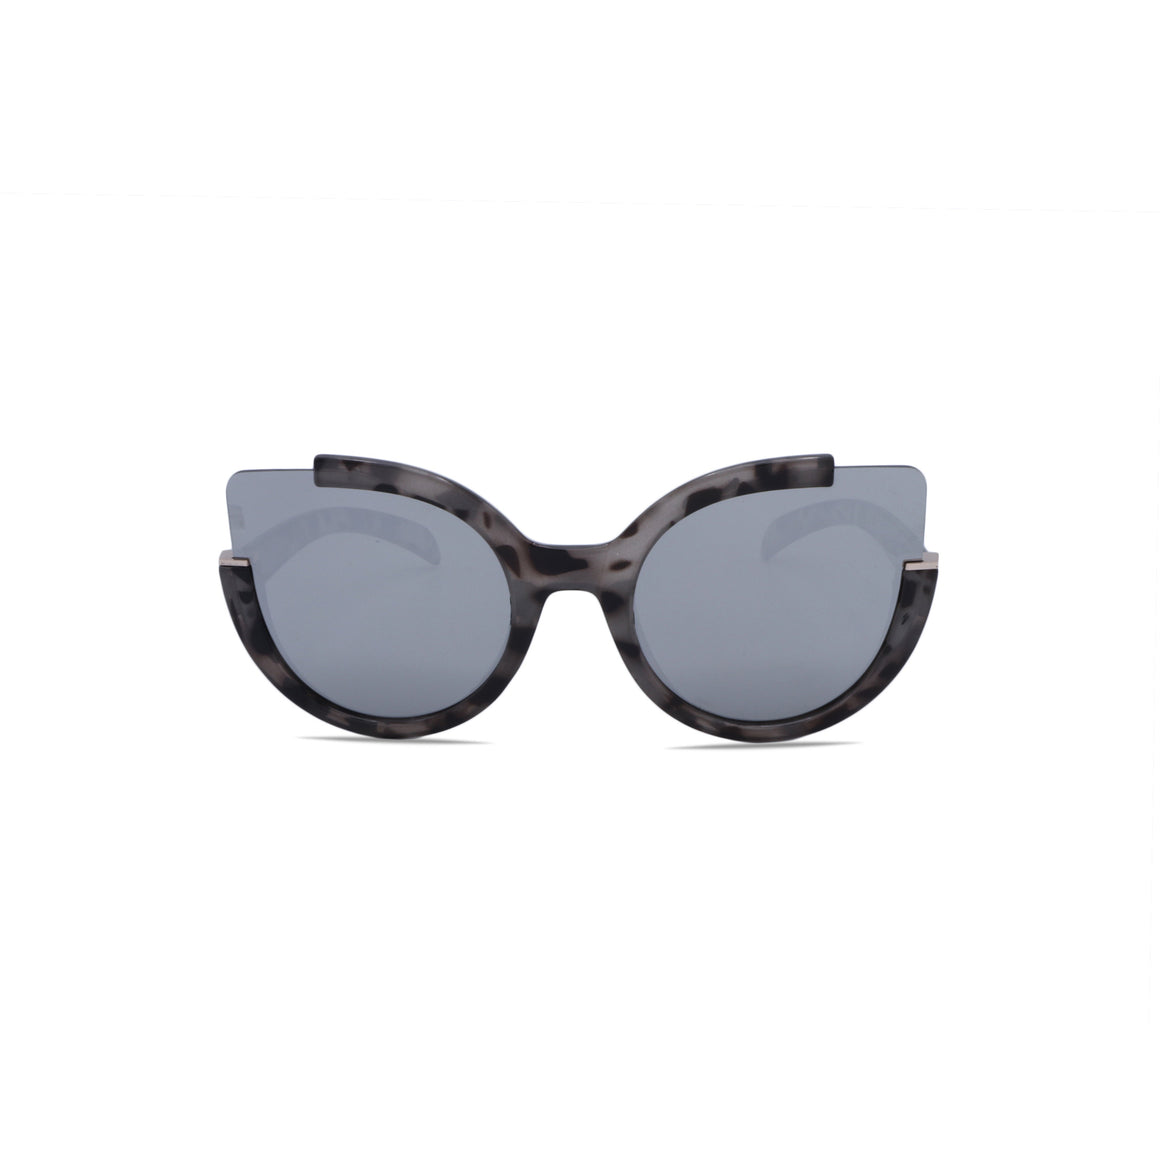 Rimless Sunglasses Butterfly Fashion in Marbled Black Grey Color